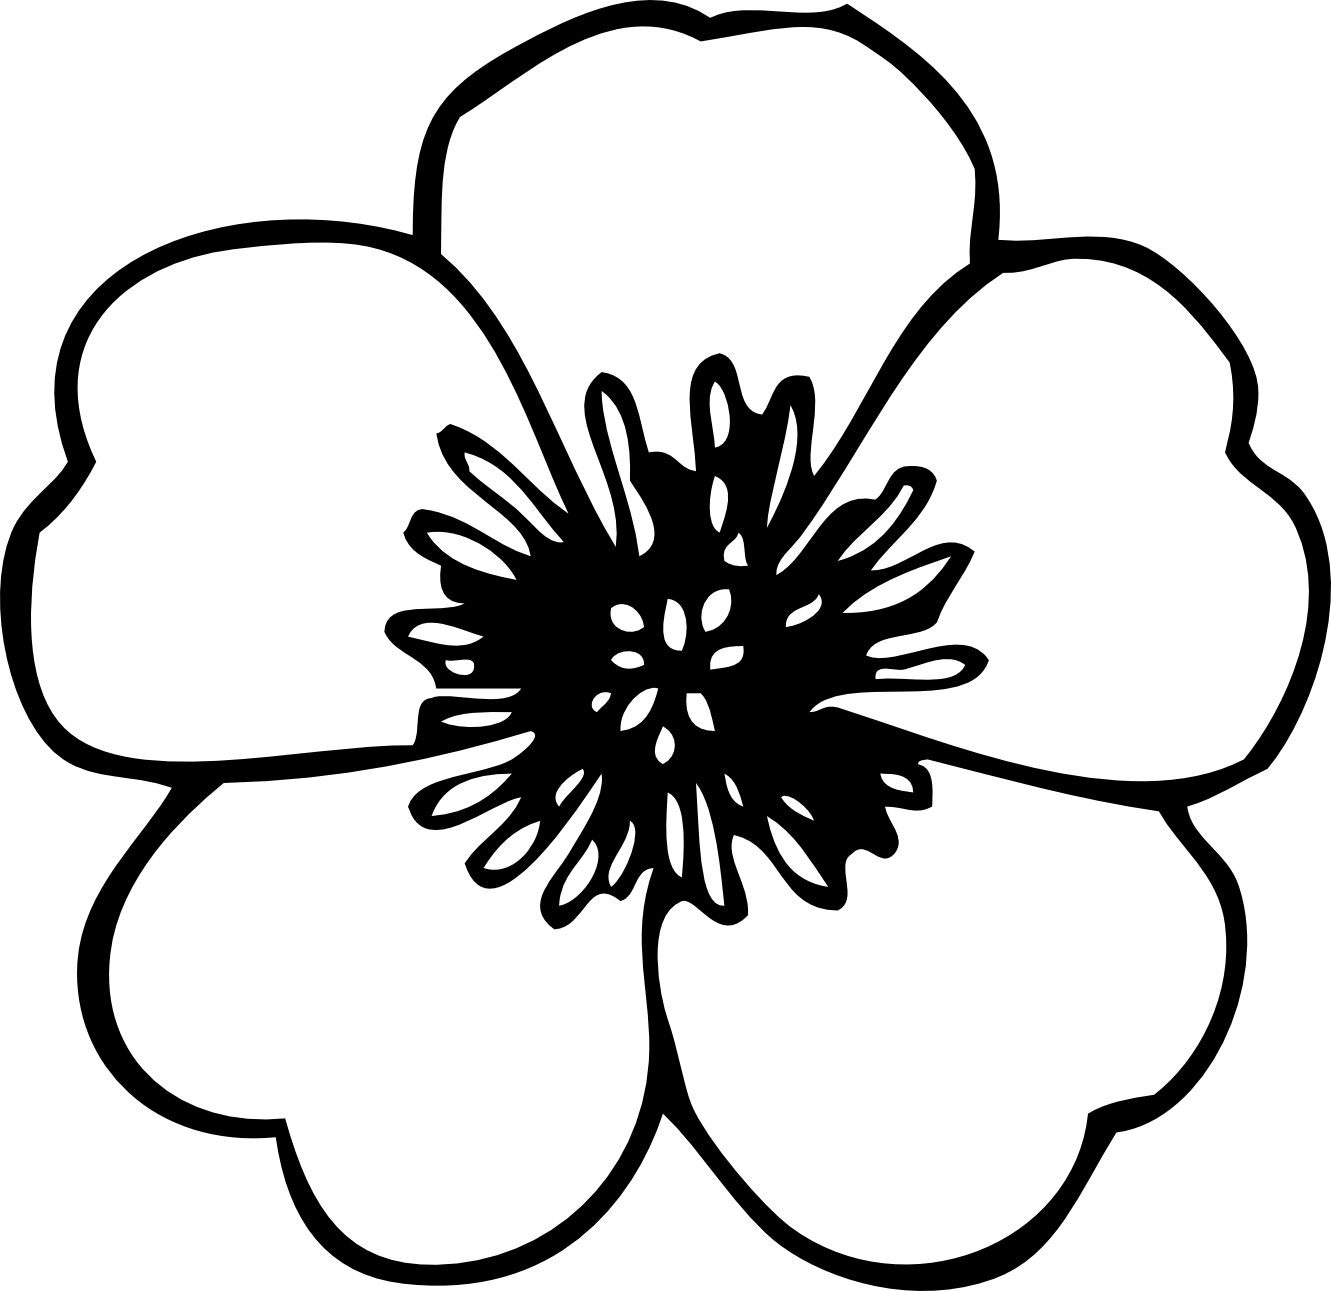 Sunflower Clip Art Black And White - Cliparts.co